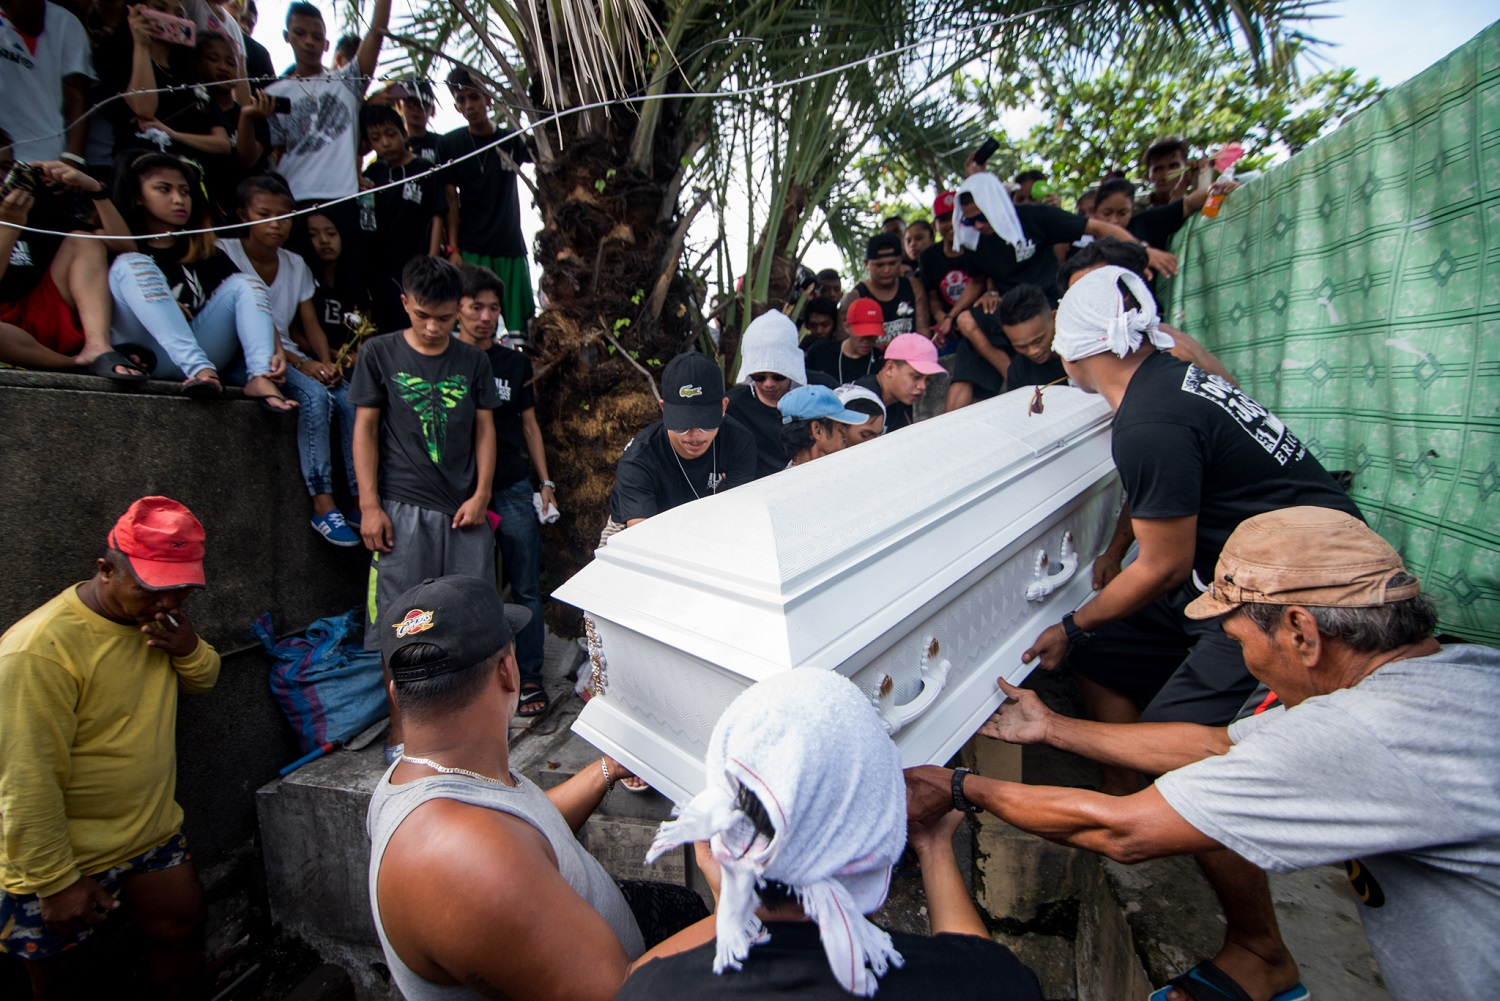 "Family and friends slain rickshaw driver Eric Sison help carry his remains to its final resting place, August 31, at the Pasay Municipal Cemetery in Pasay City, Philippines. Sison was killed as he was surrendering, on August 23, in a ""routine anti-criminality patrol"" by Pasay Police."